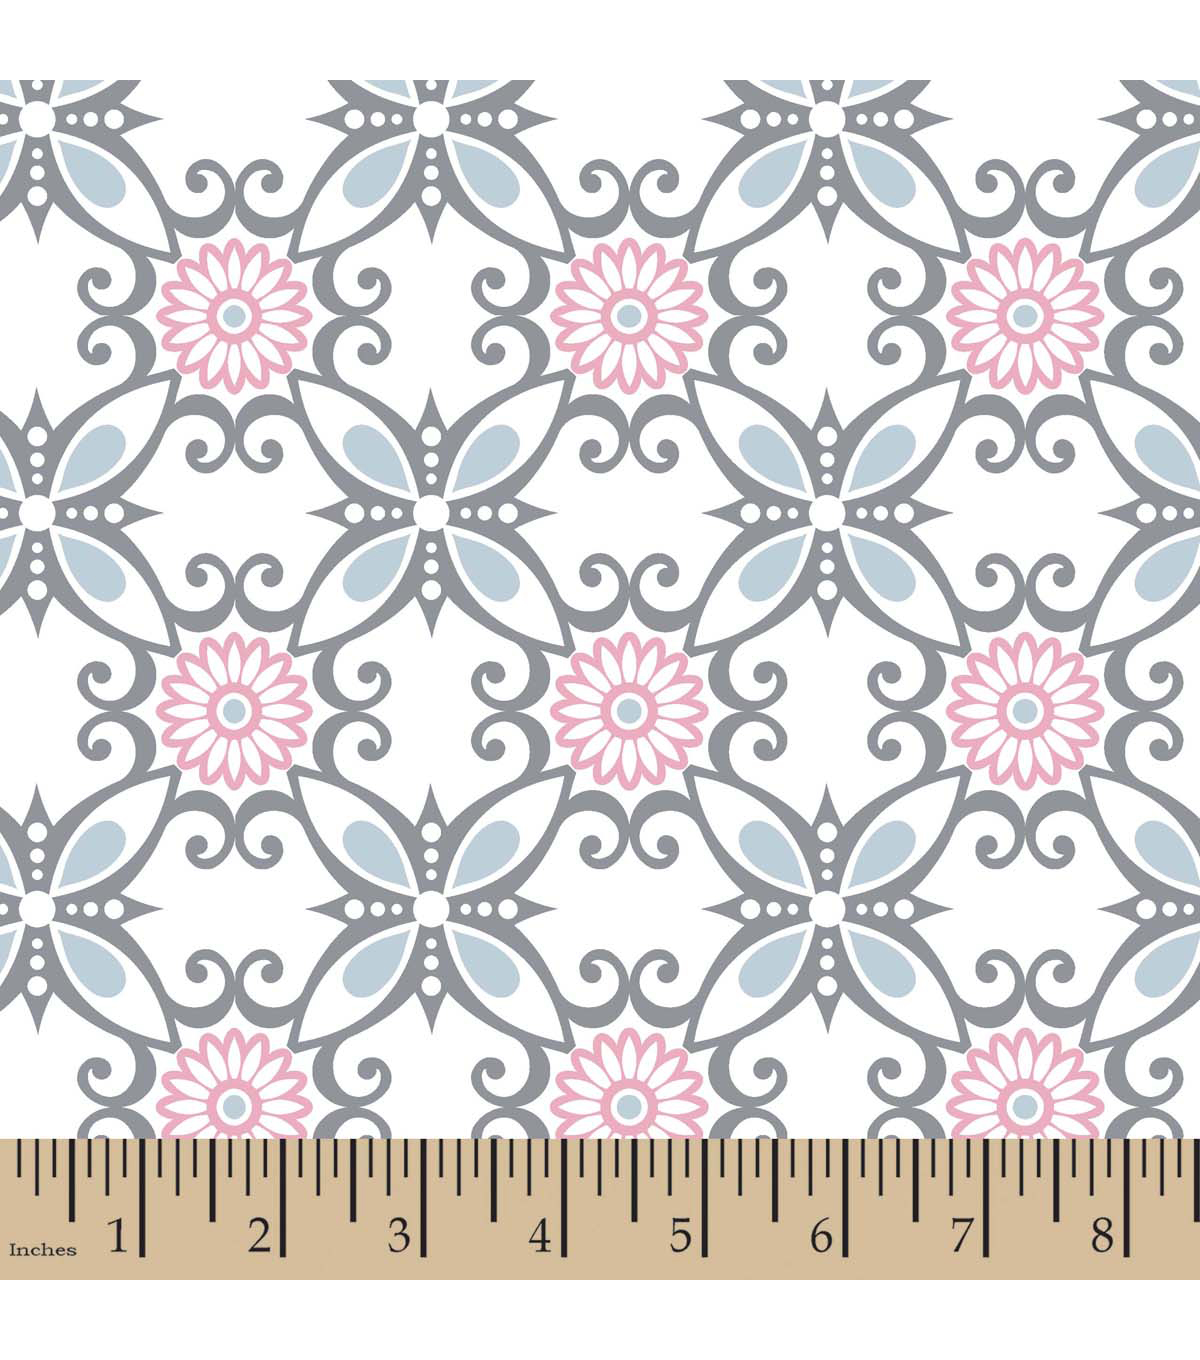 Snuggle Flannel Fabric -Floral Swirl Blue